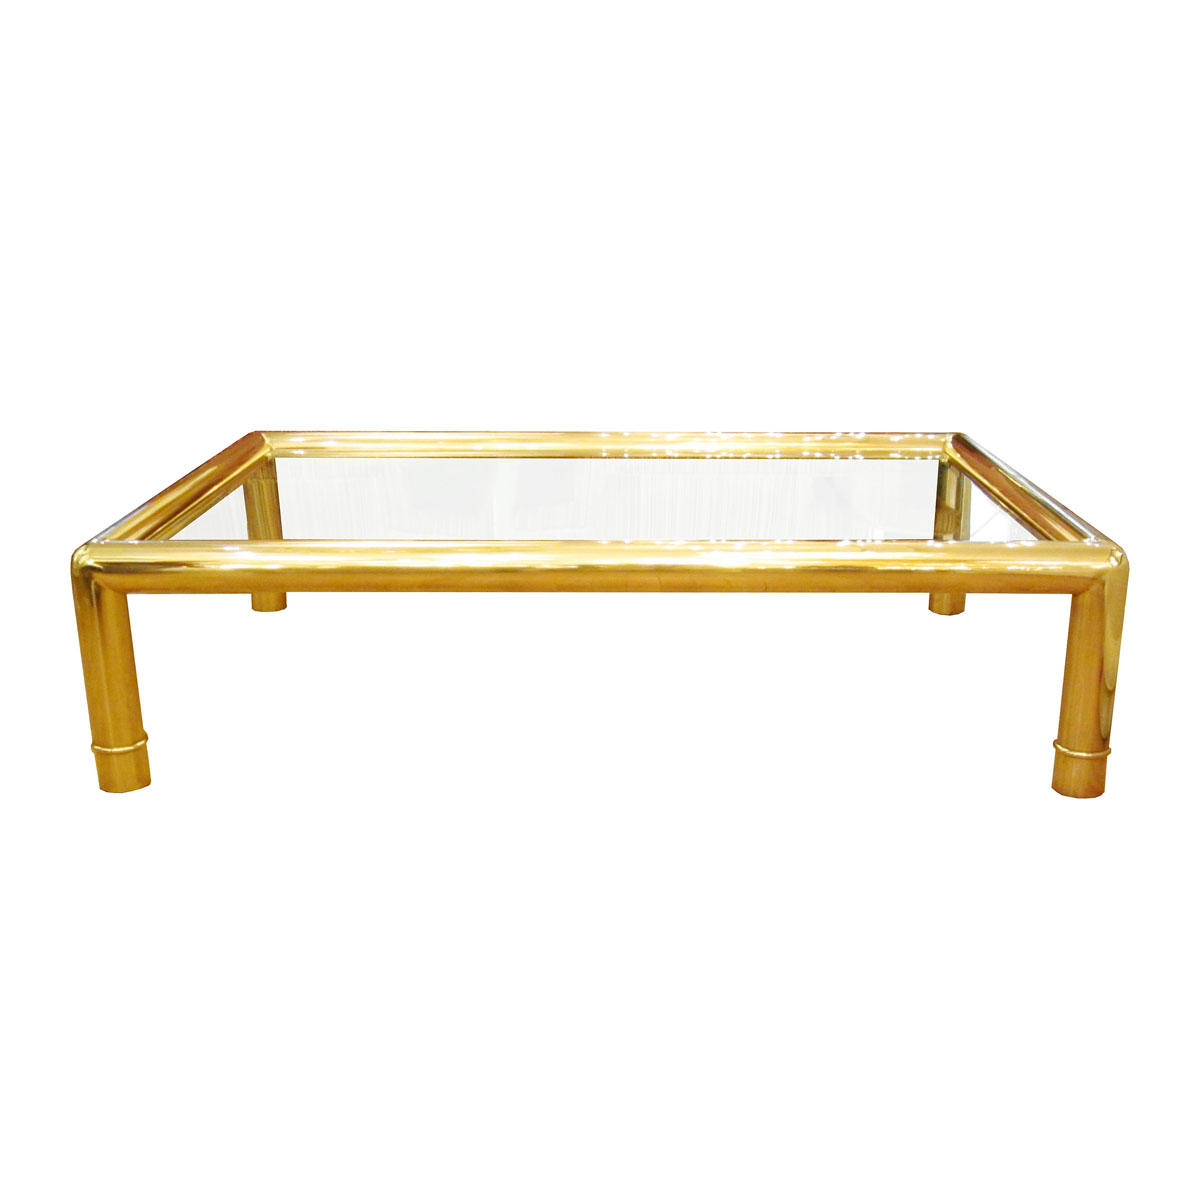 Glass Top Rectangular Coffee Table: Rectangular Coffee Table With Tubular Brass Frame And